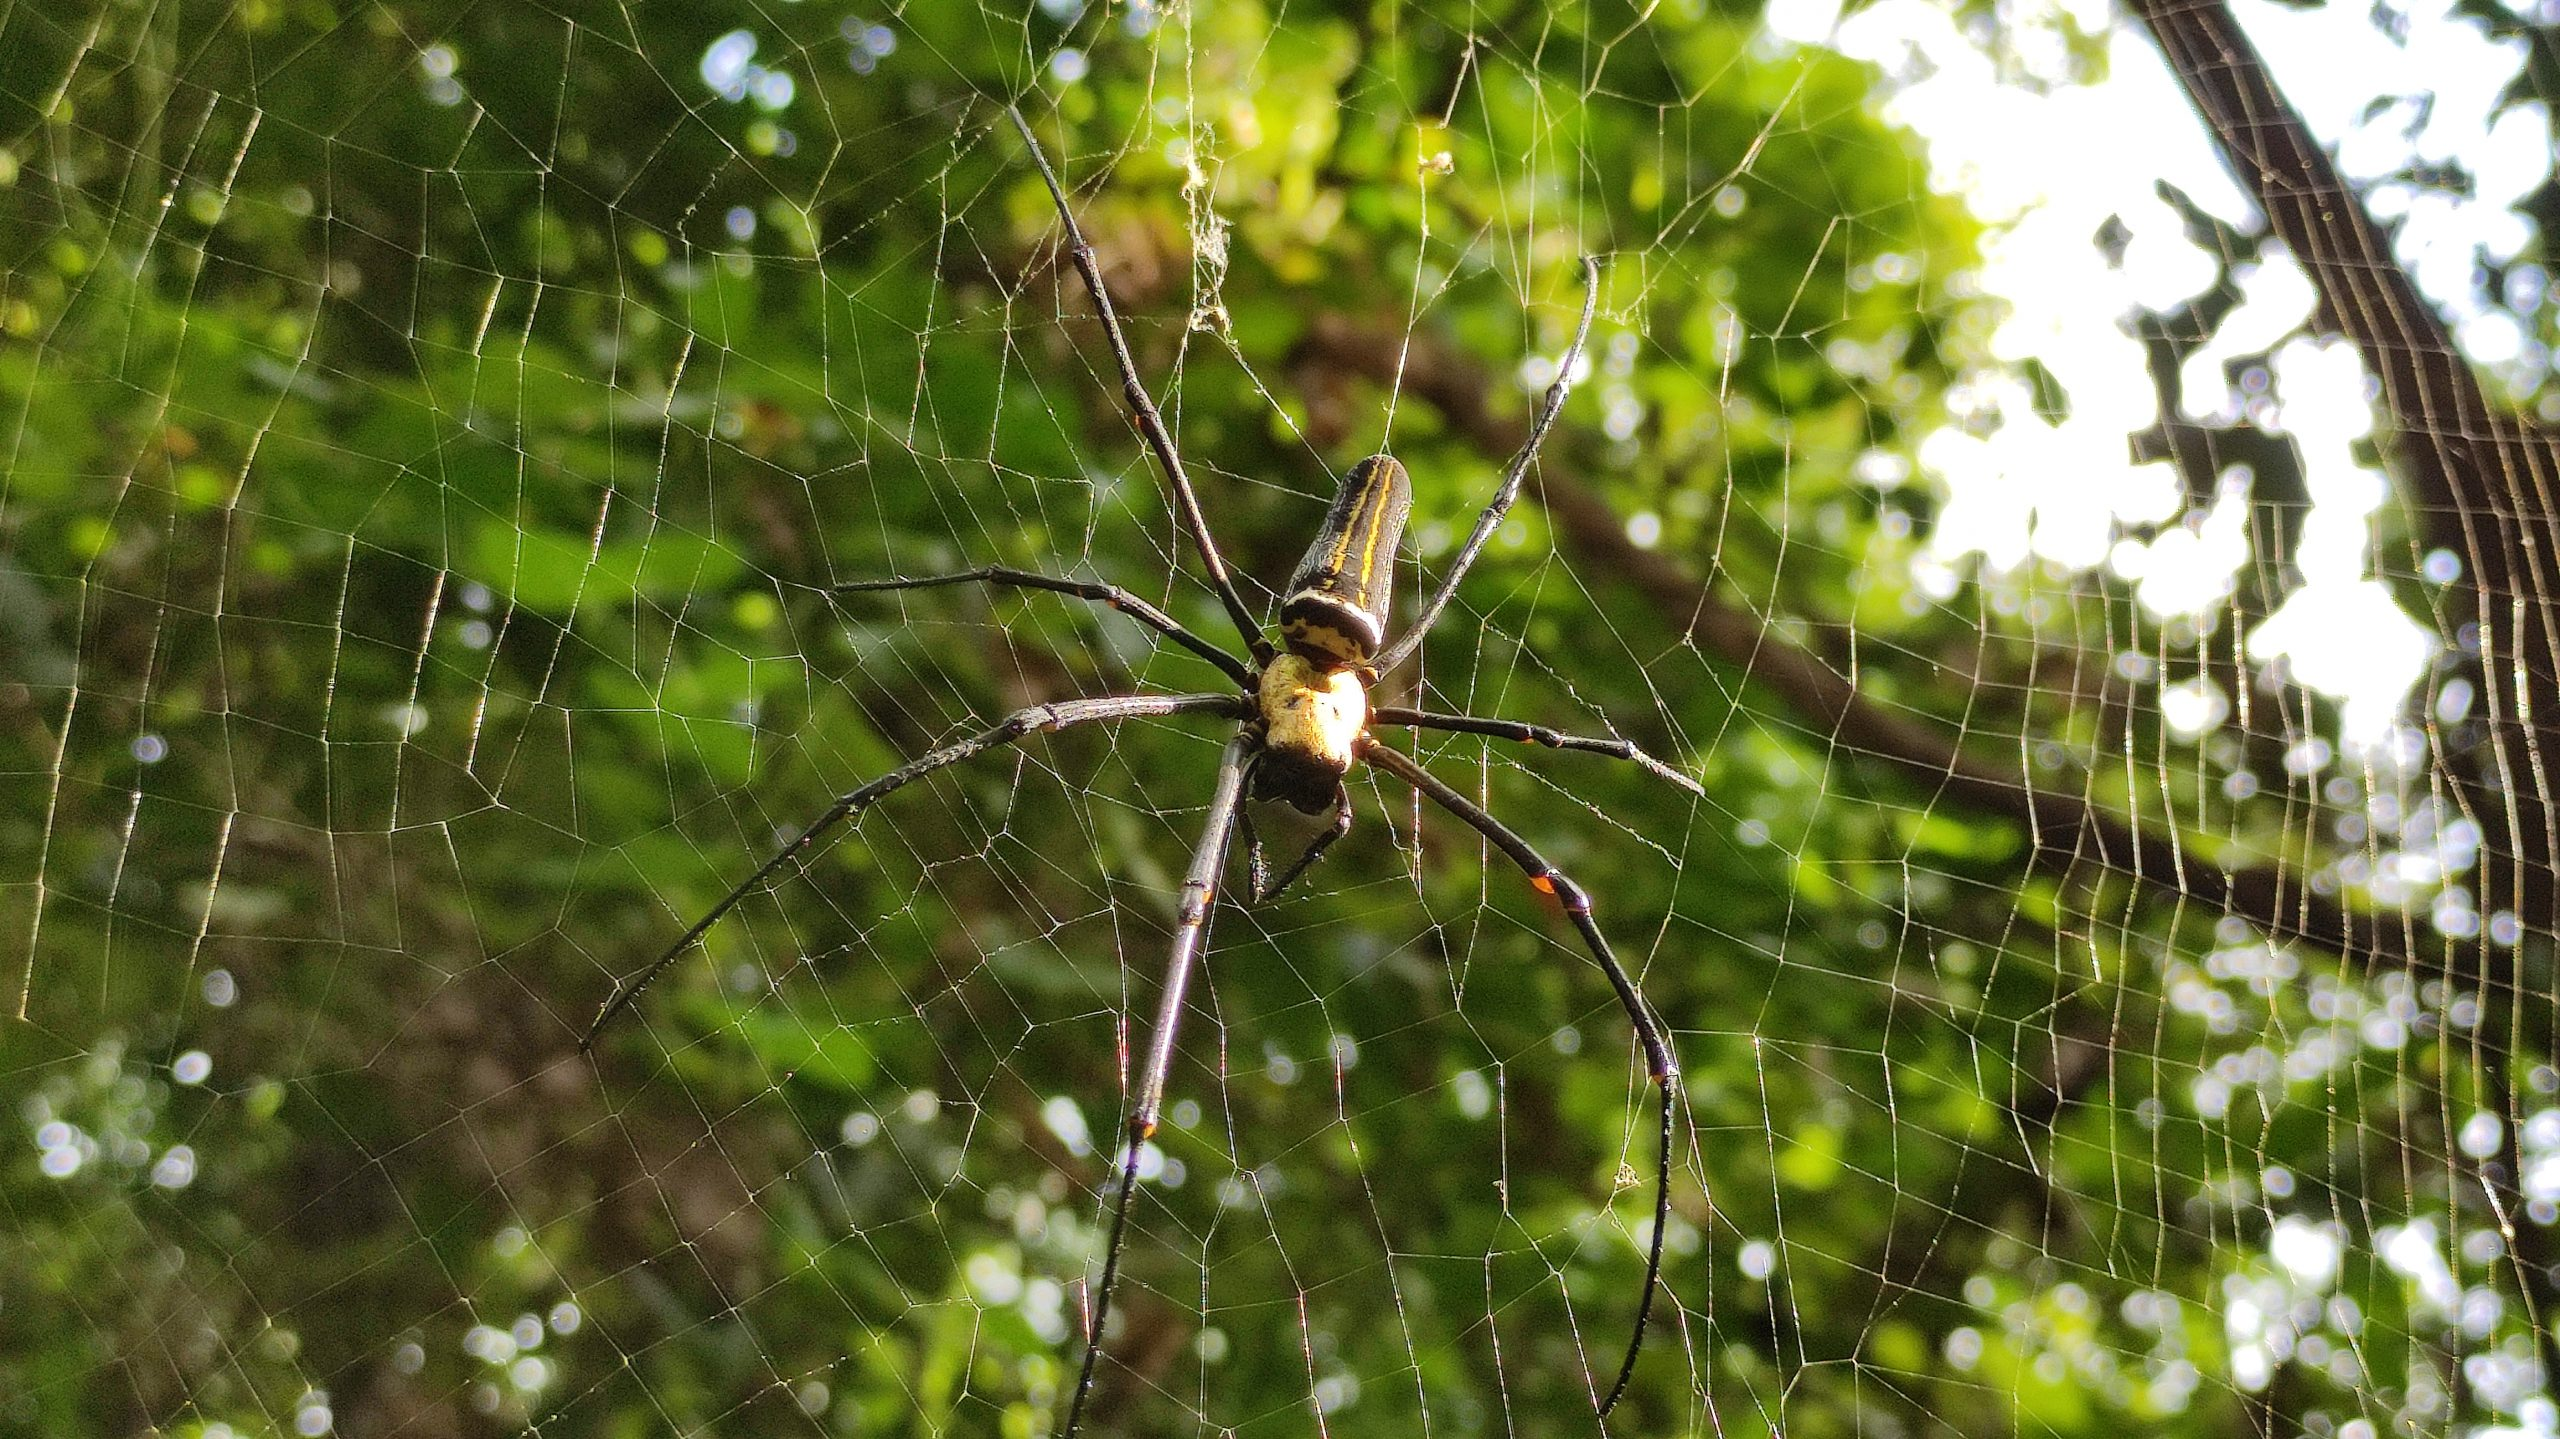 A spider in his net